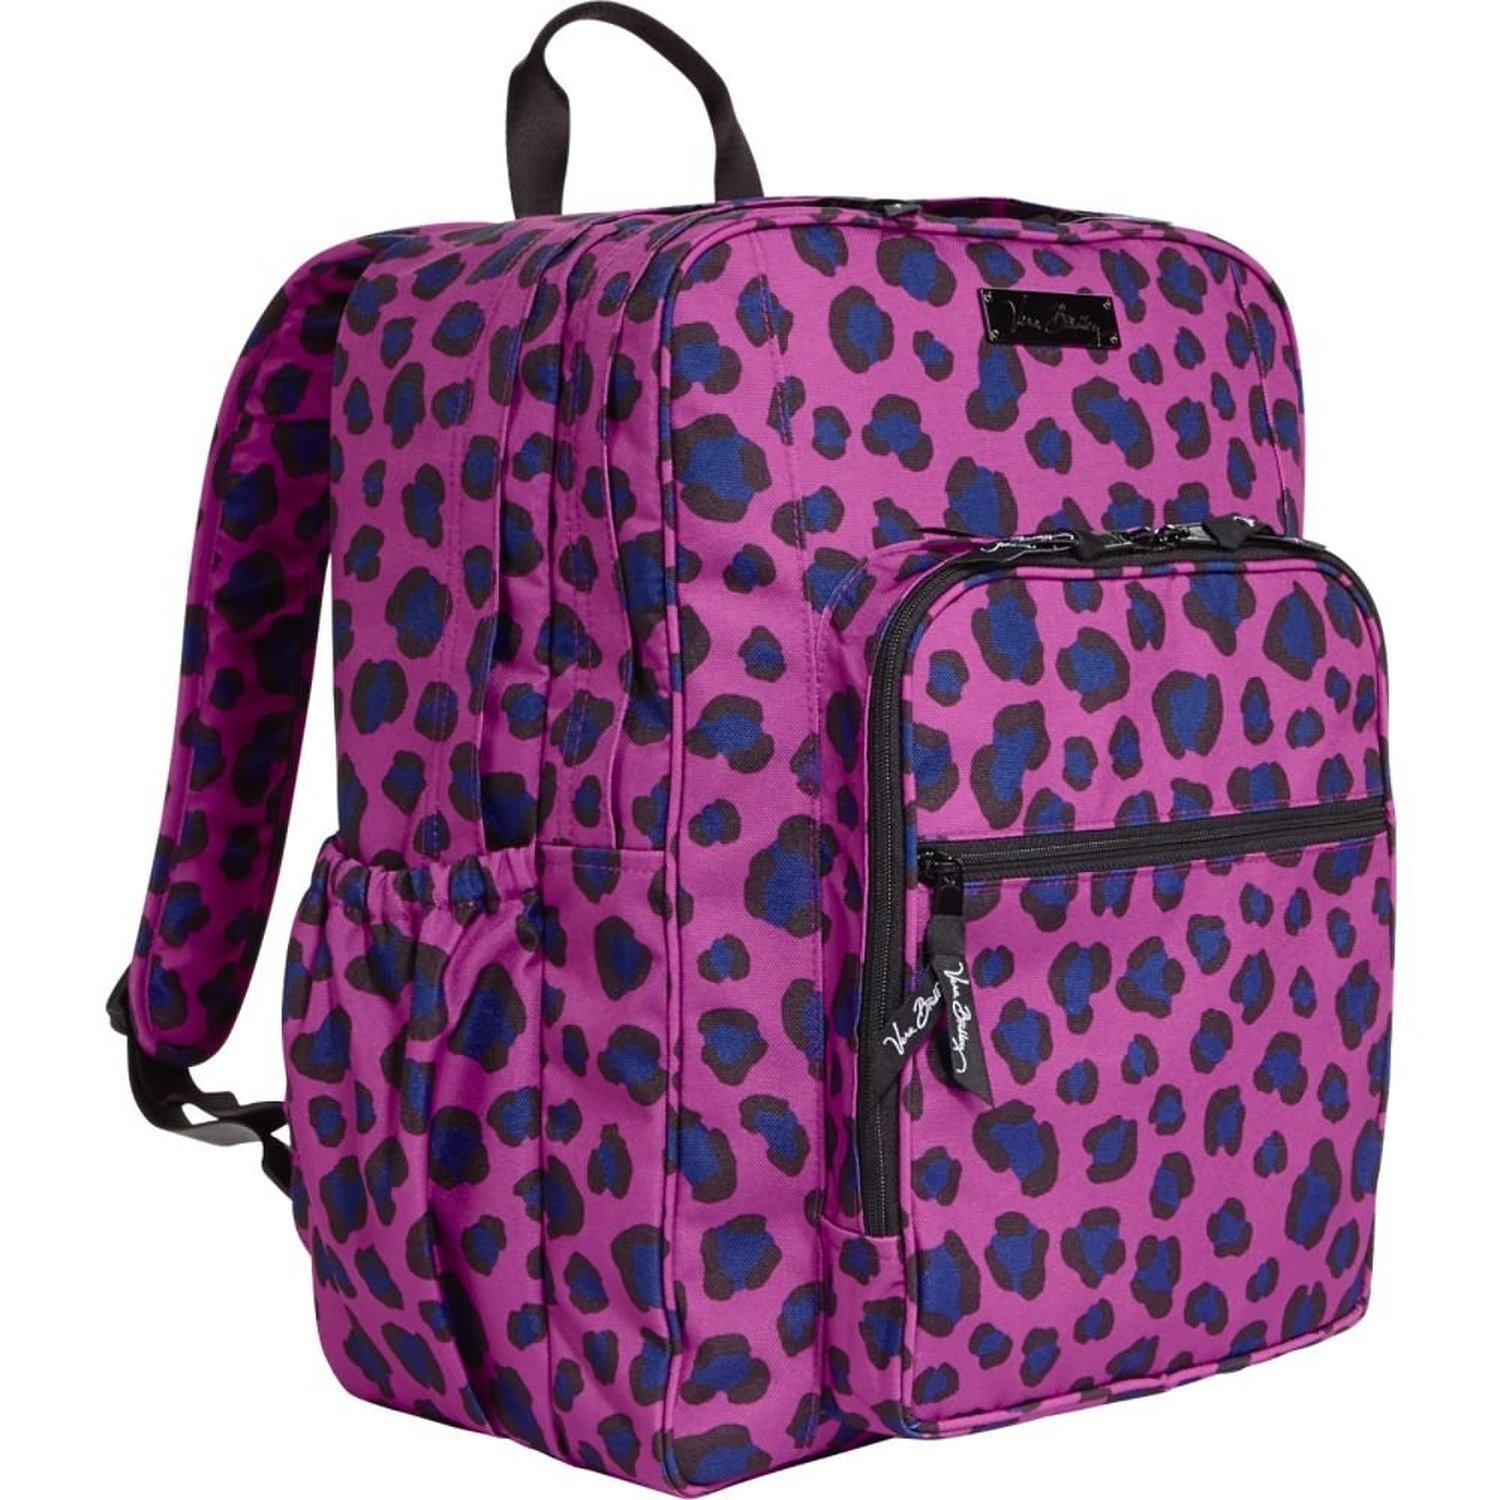 5b3cdc32c028 Buy Vera Bradley Lighten Up Large Backpack in Leopard Spots in Cheap ...